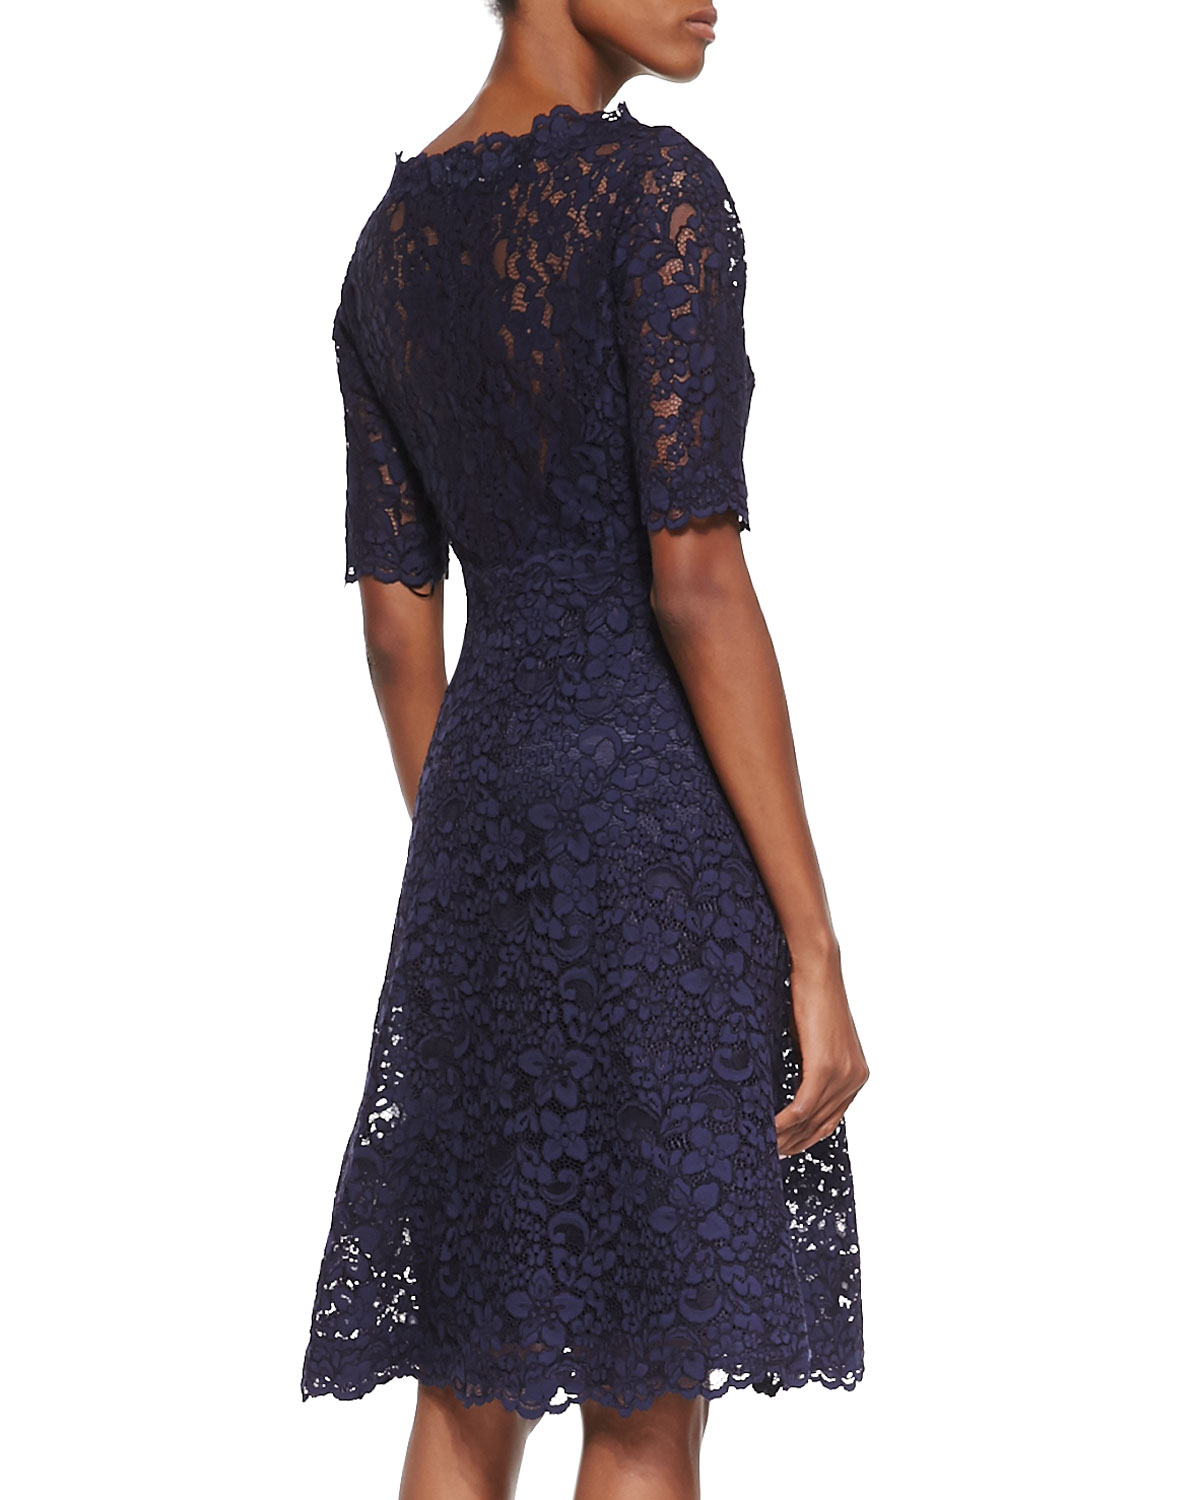 Lyst - Teri Jon Lace Overlay Cocktail Dress in Blue